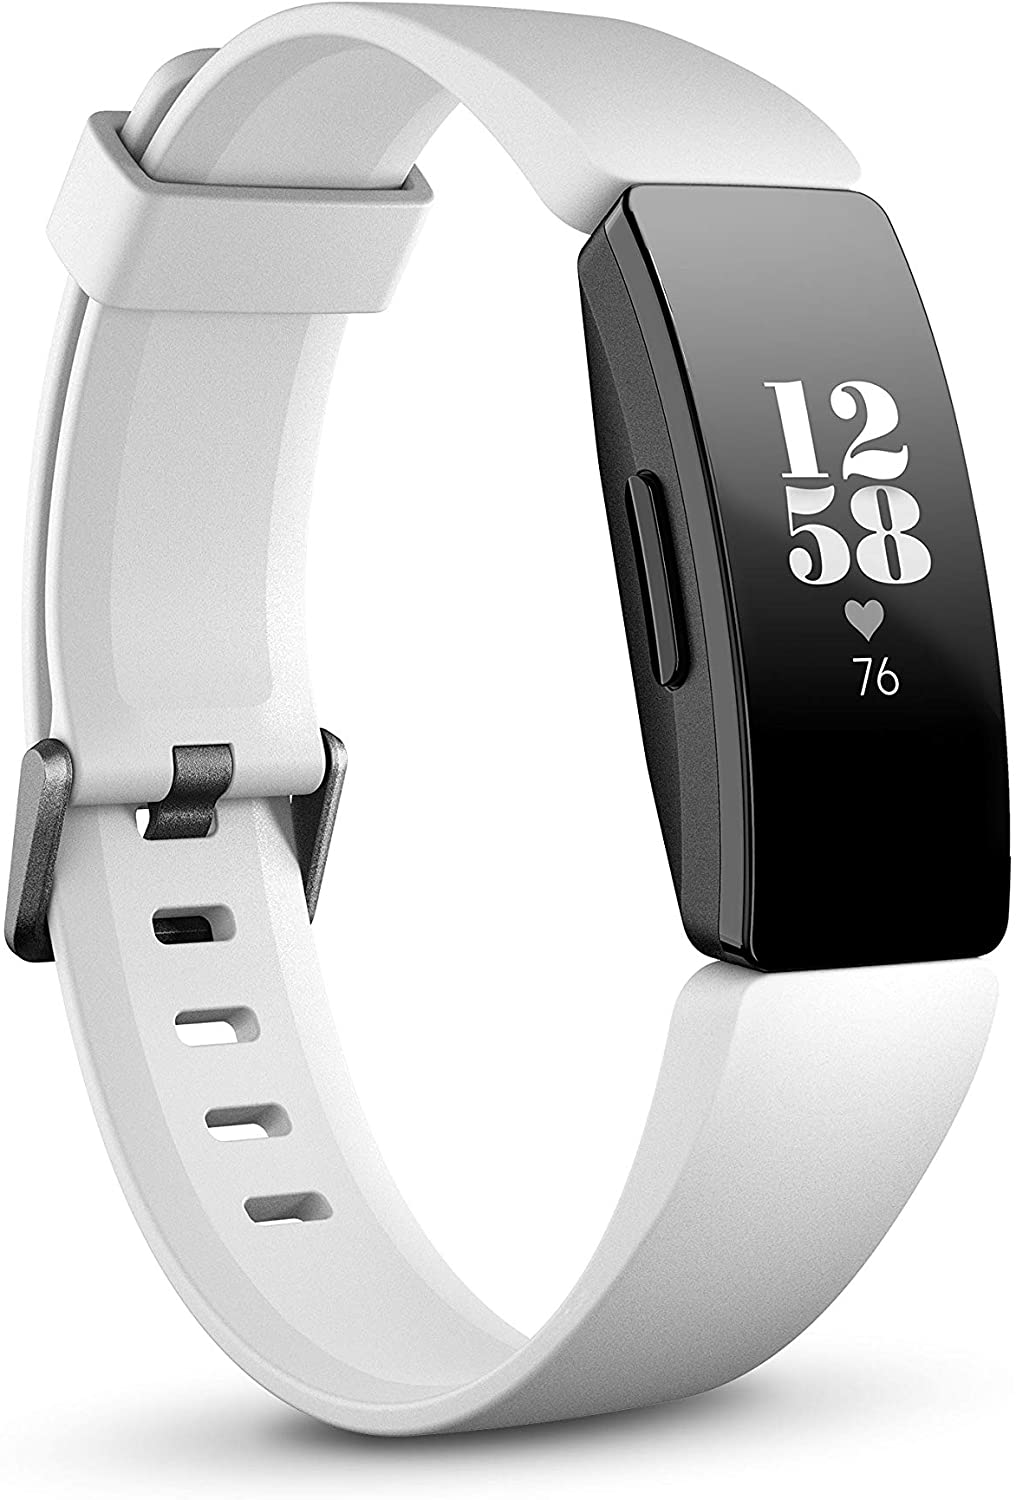 An Activity Tracker By Fitbit